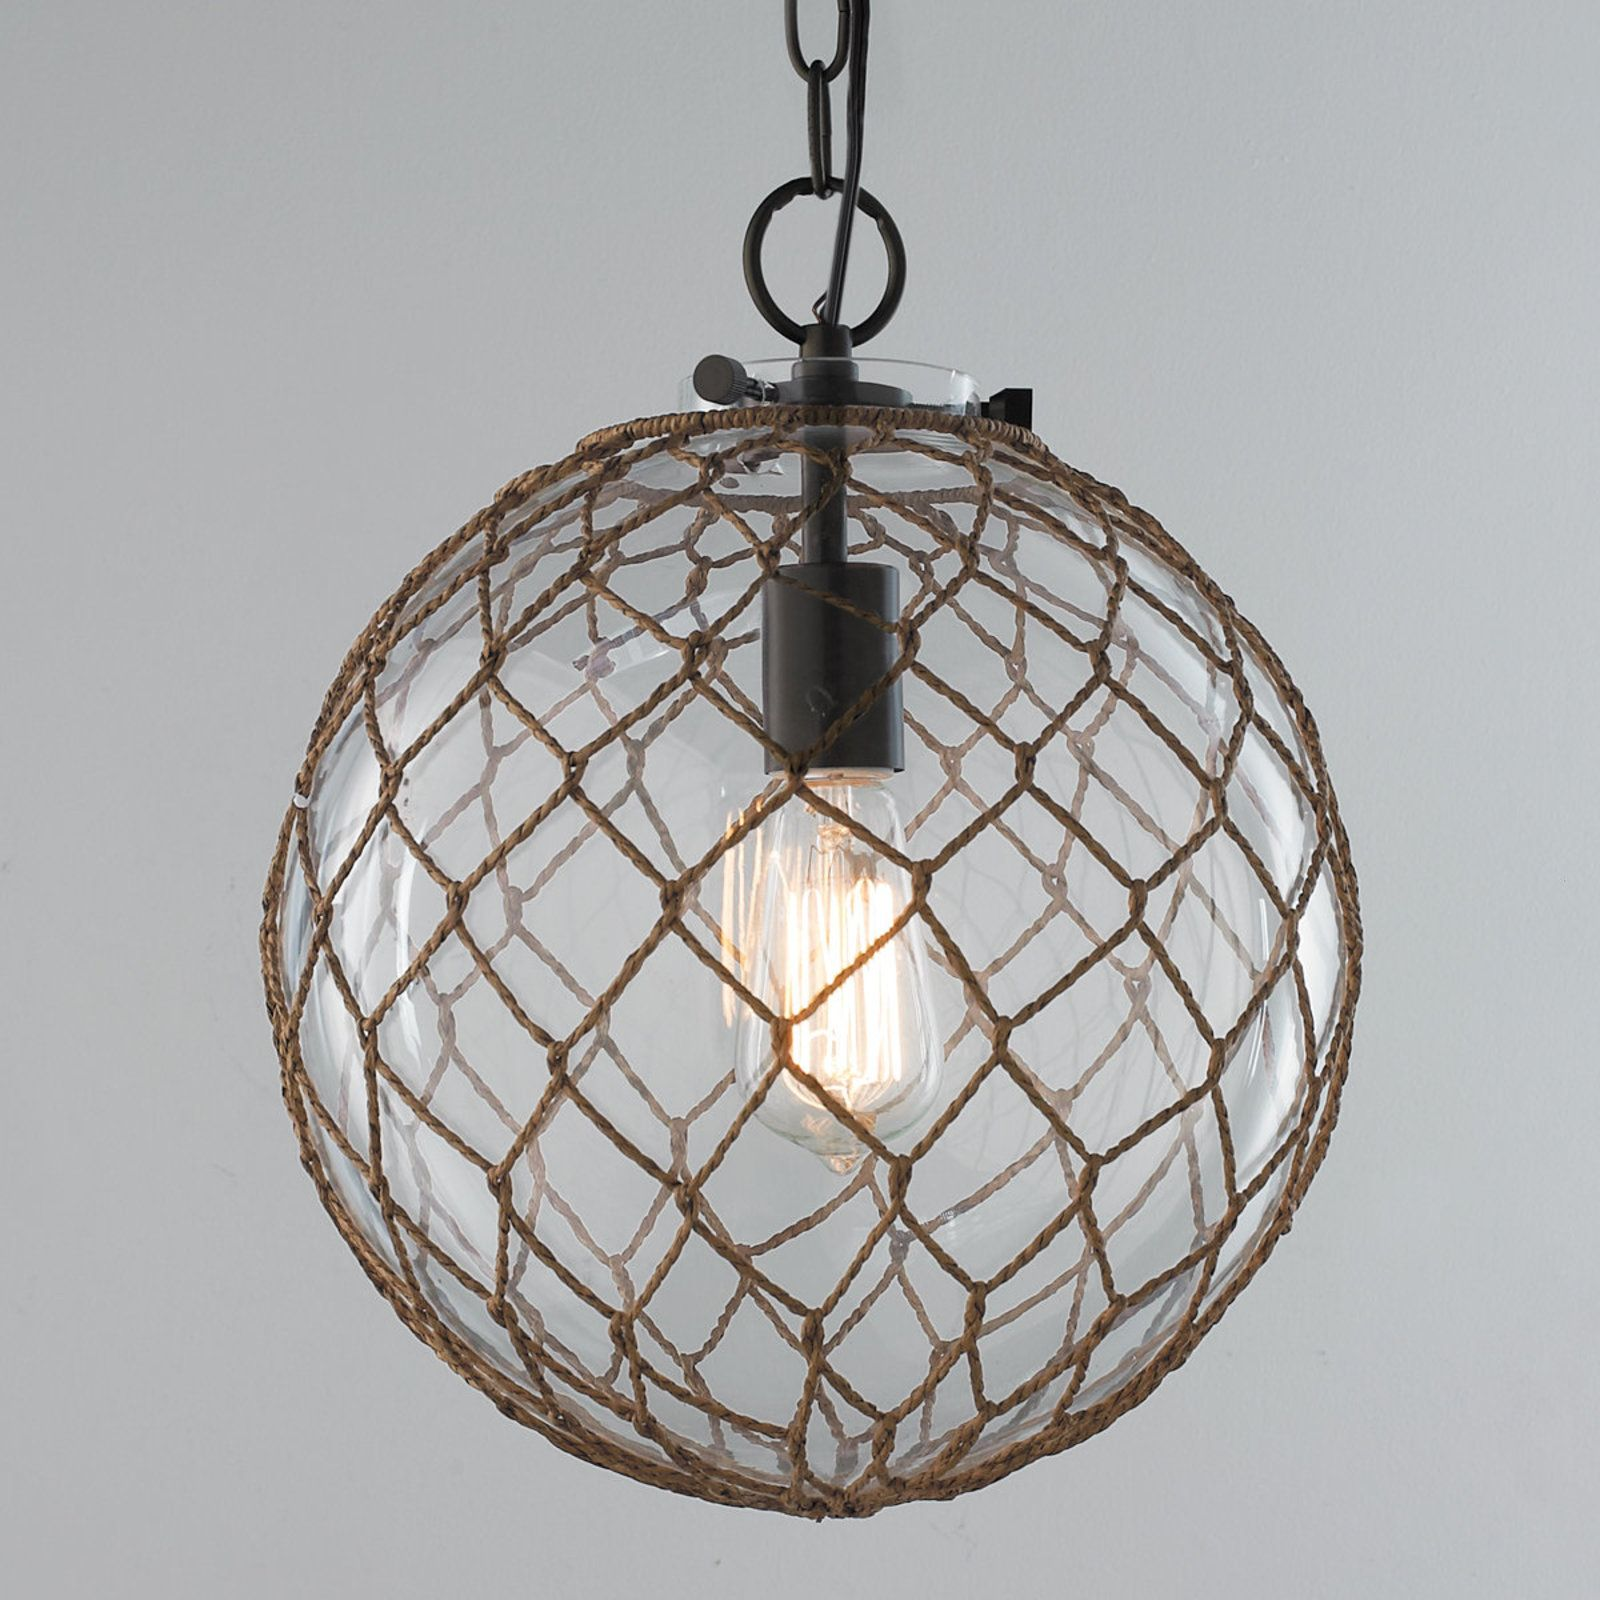 Beach Hanging Lights Jute Rope Globe Pendant Beach Cottage Pinterest